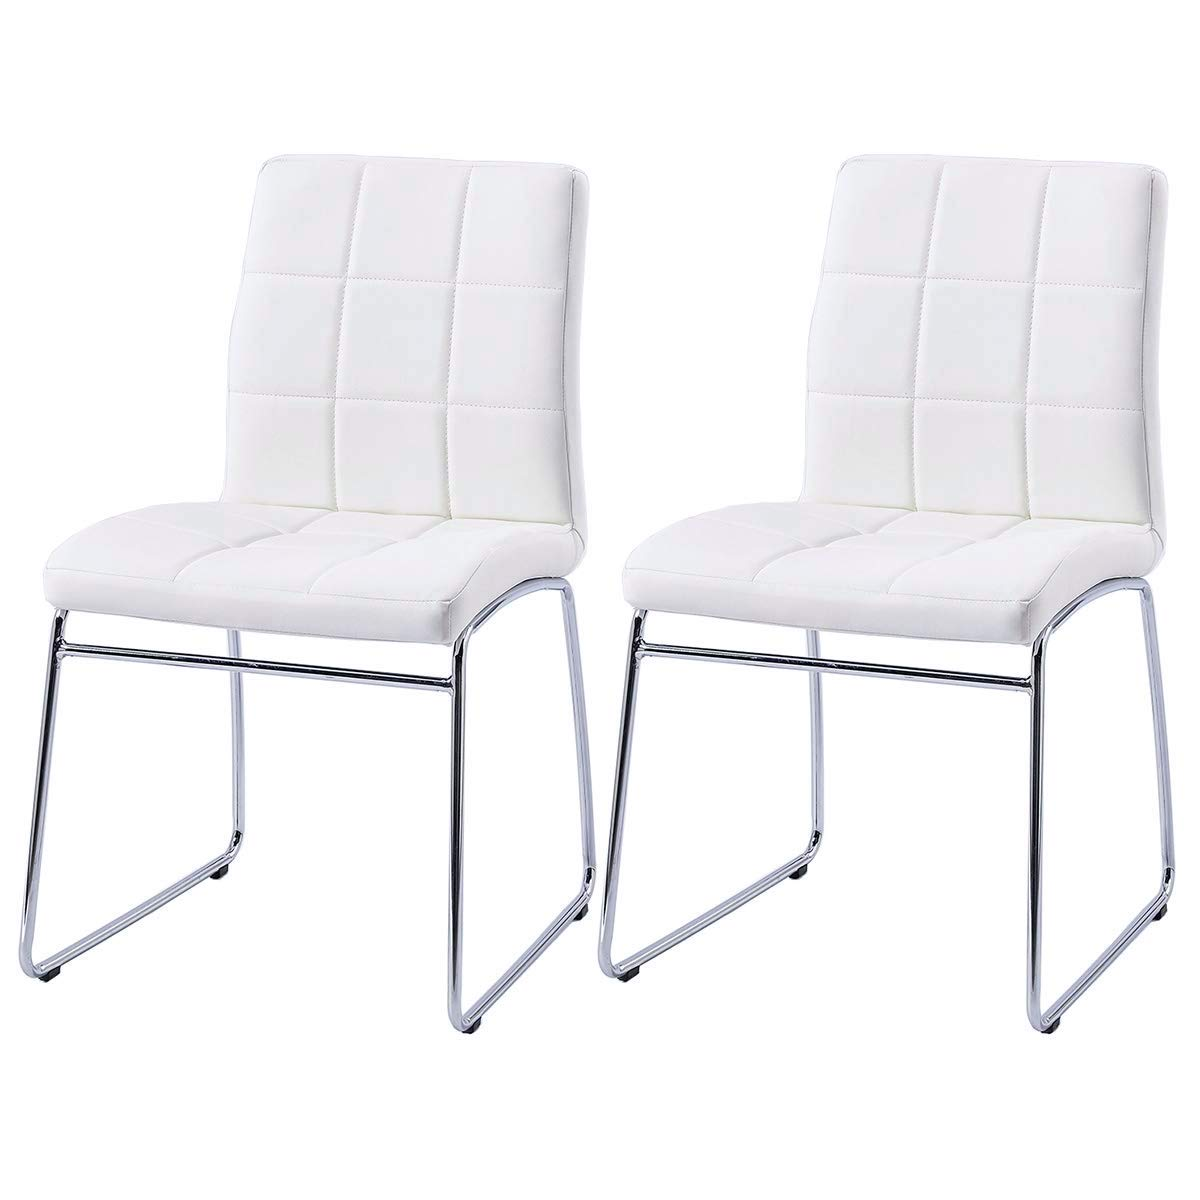 Astounding Modern Dining Chairs Set Of 2 Dining Room Chairs With Faux Leather Padded Seat Back In Checkered Pattern And Sled Chrome Legs Kitchen Chairs For Squirreltailoven Fun Painted Chair Ideas Images Squirreltailovenorg